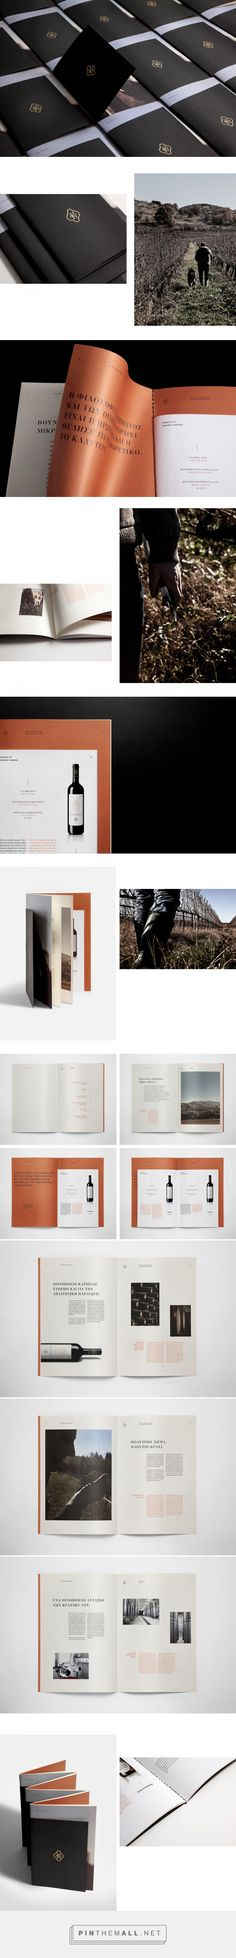 Karipidis Winery Brochure by Luminous Design Group